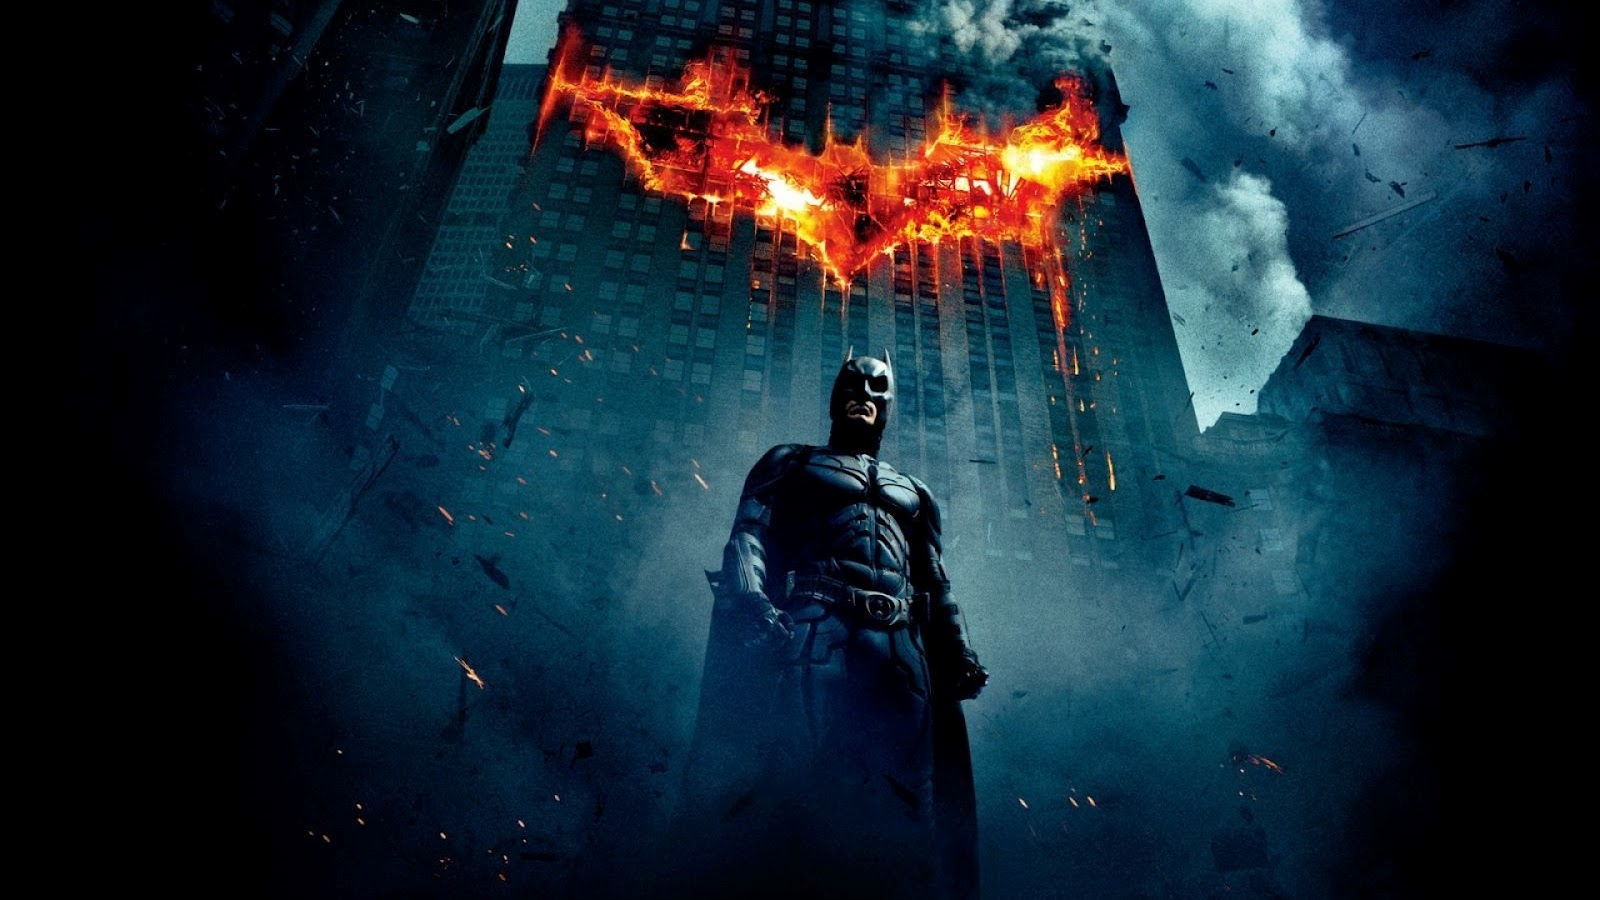 http://2.bp.blogspot.com/-Ppwy485coN0/UBHklFNqMpI/AAAAAAAACaI/IJdmrFinmzk/s1600/batman-the-dark-knight-poster-hd-wallpaper_1920x1080.jpg